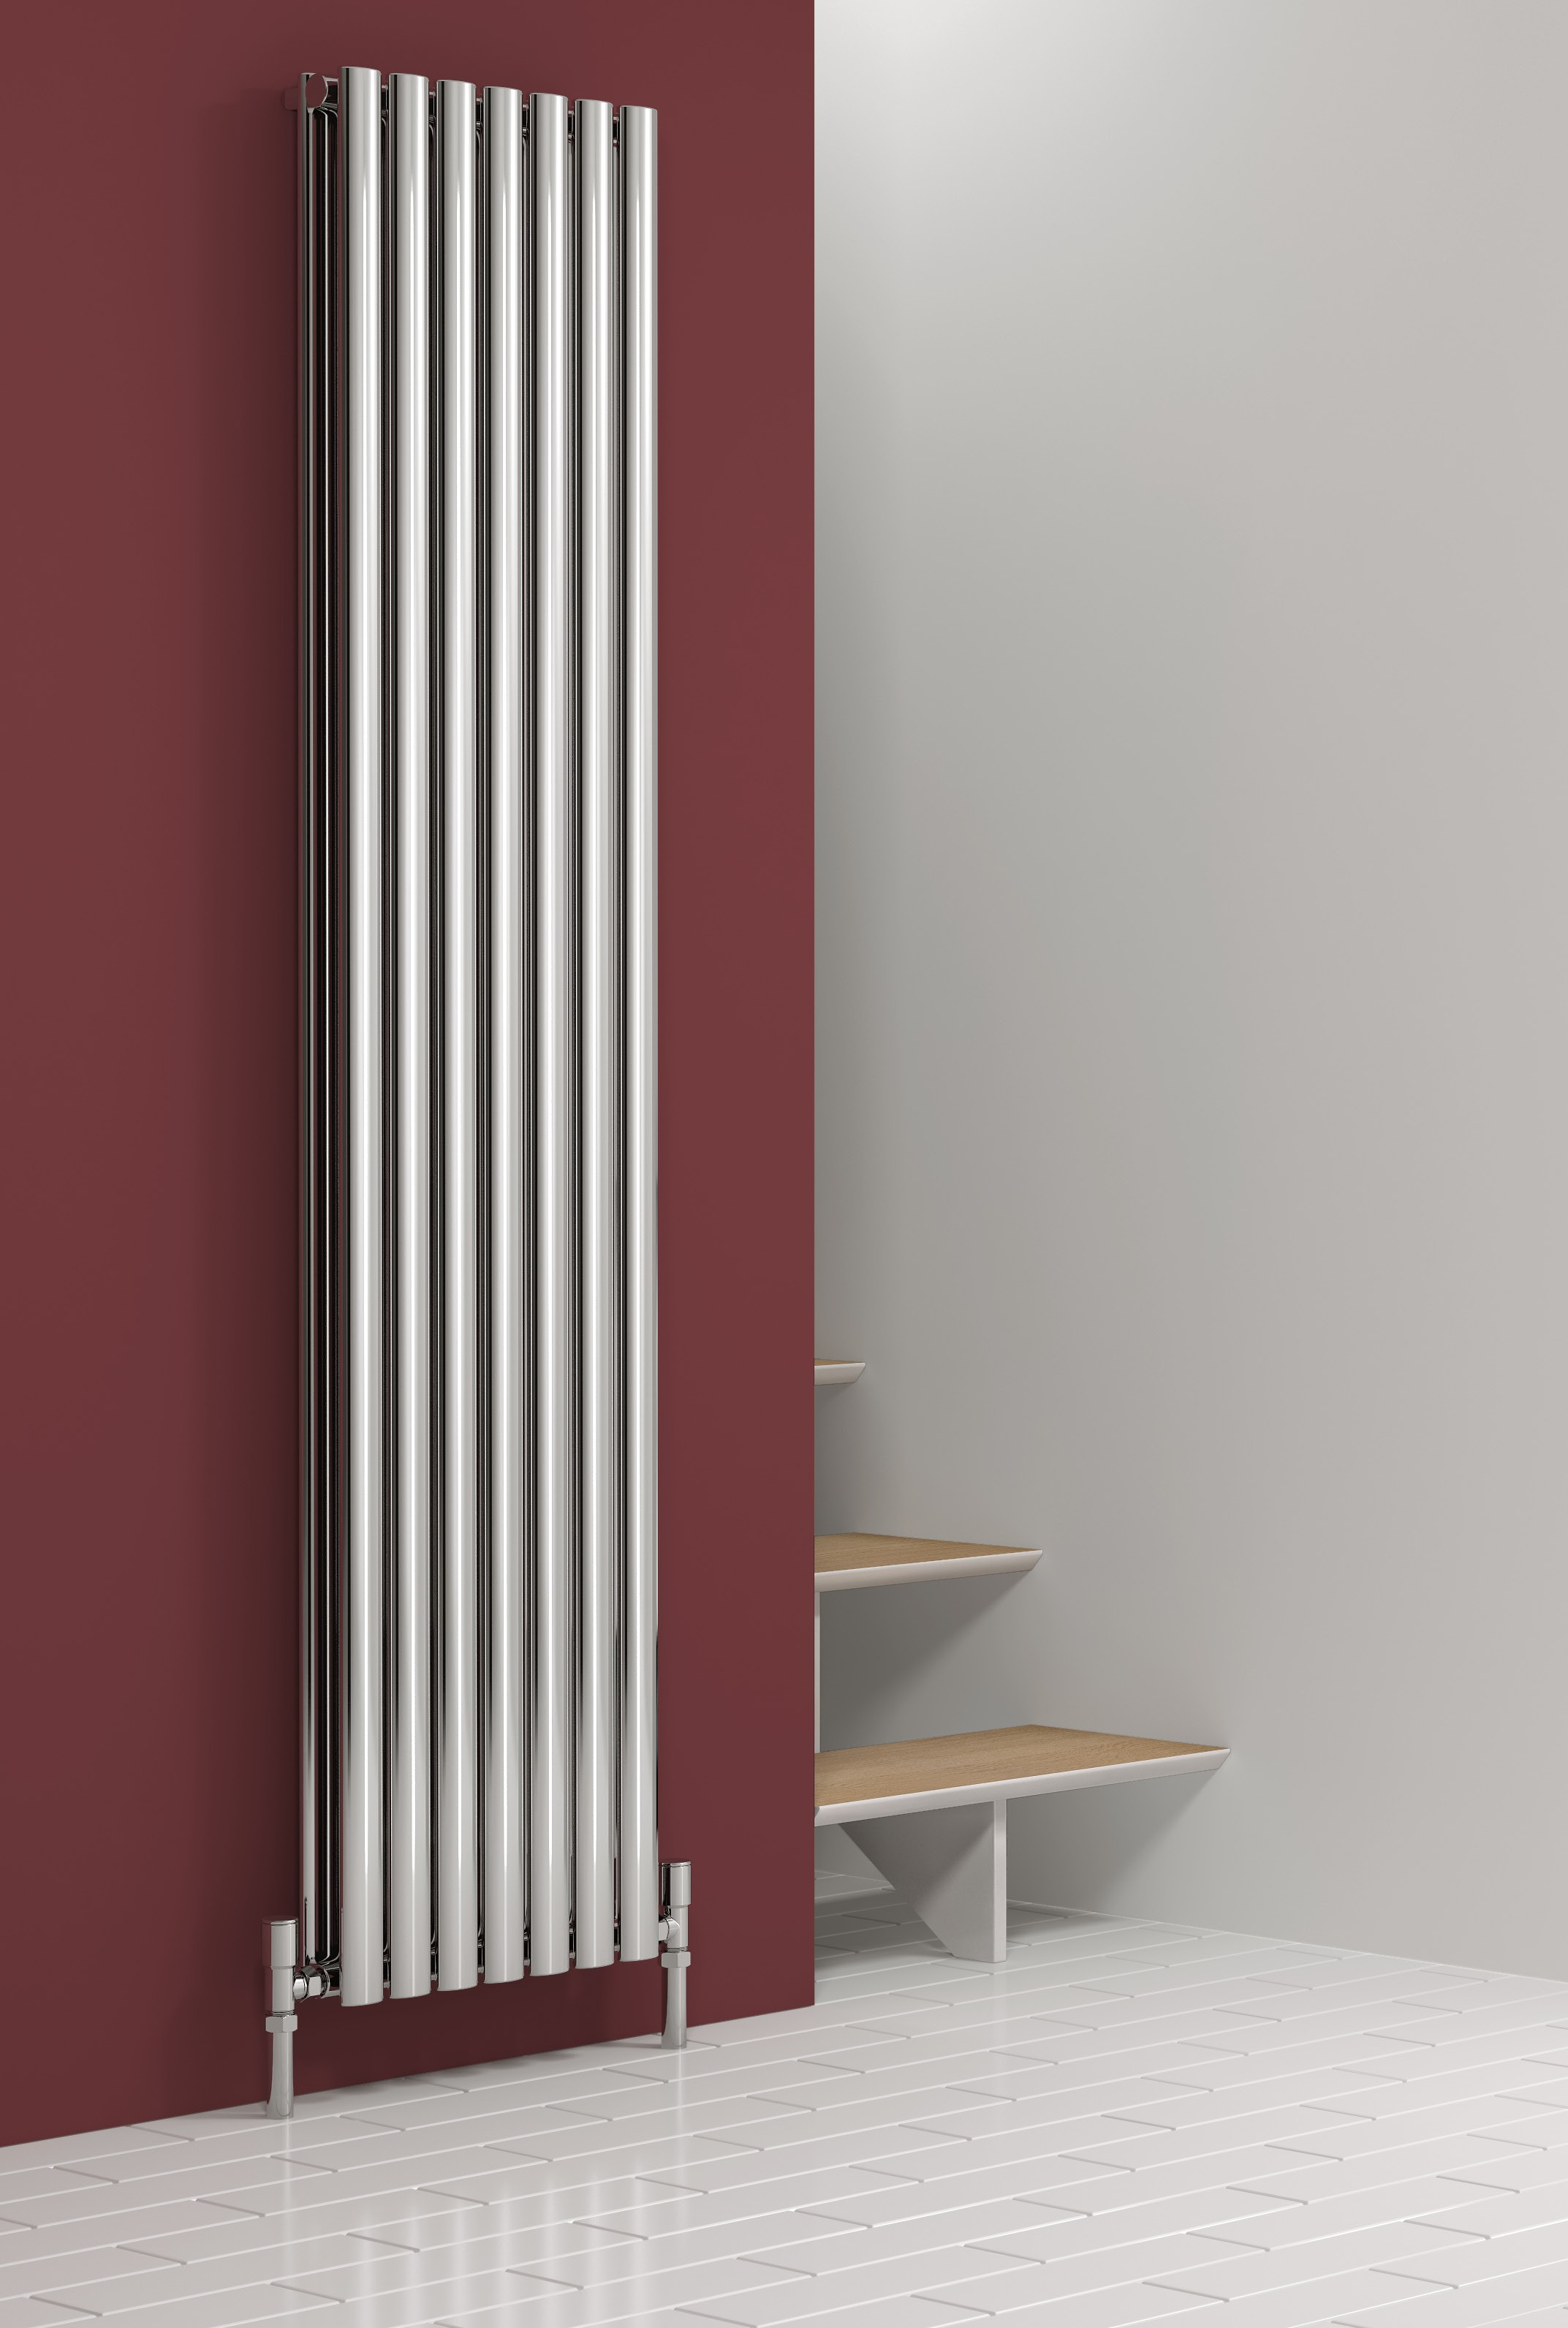 Reina Nerox Radiator Vertical Radiator World